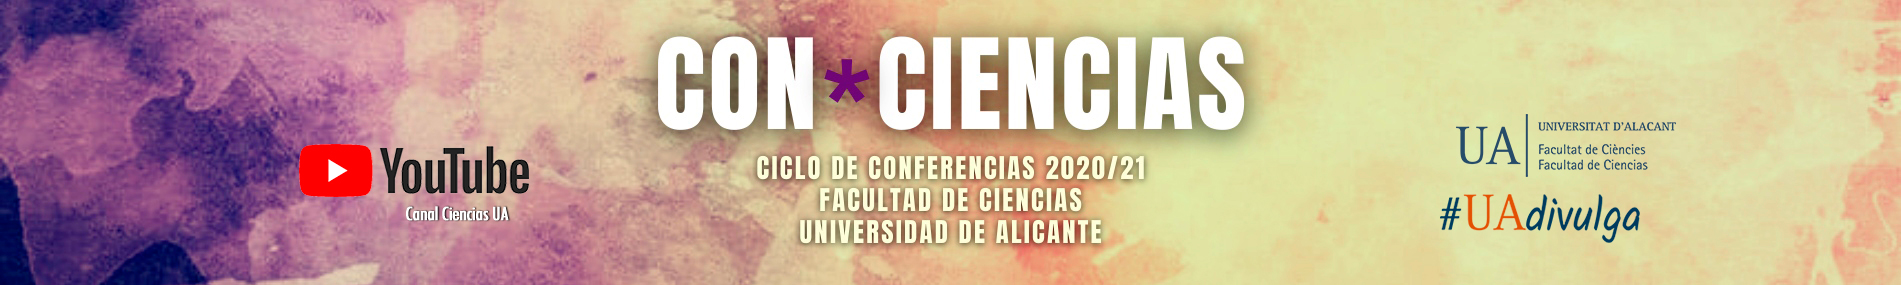 Ciclo de conferencias CON*CIENCIAS